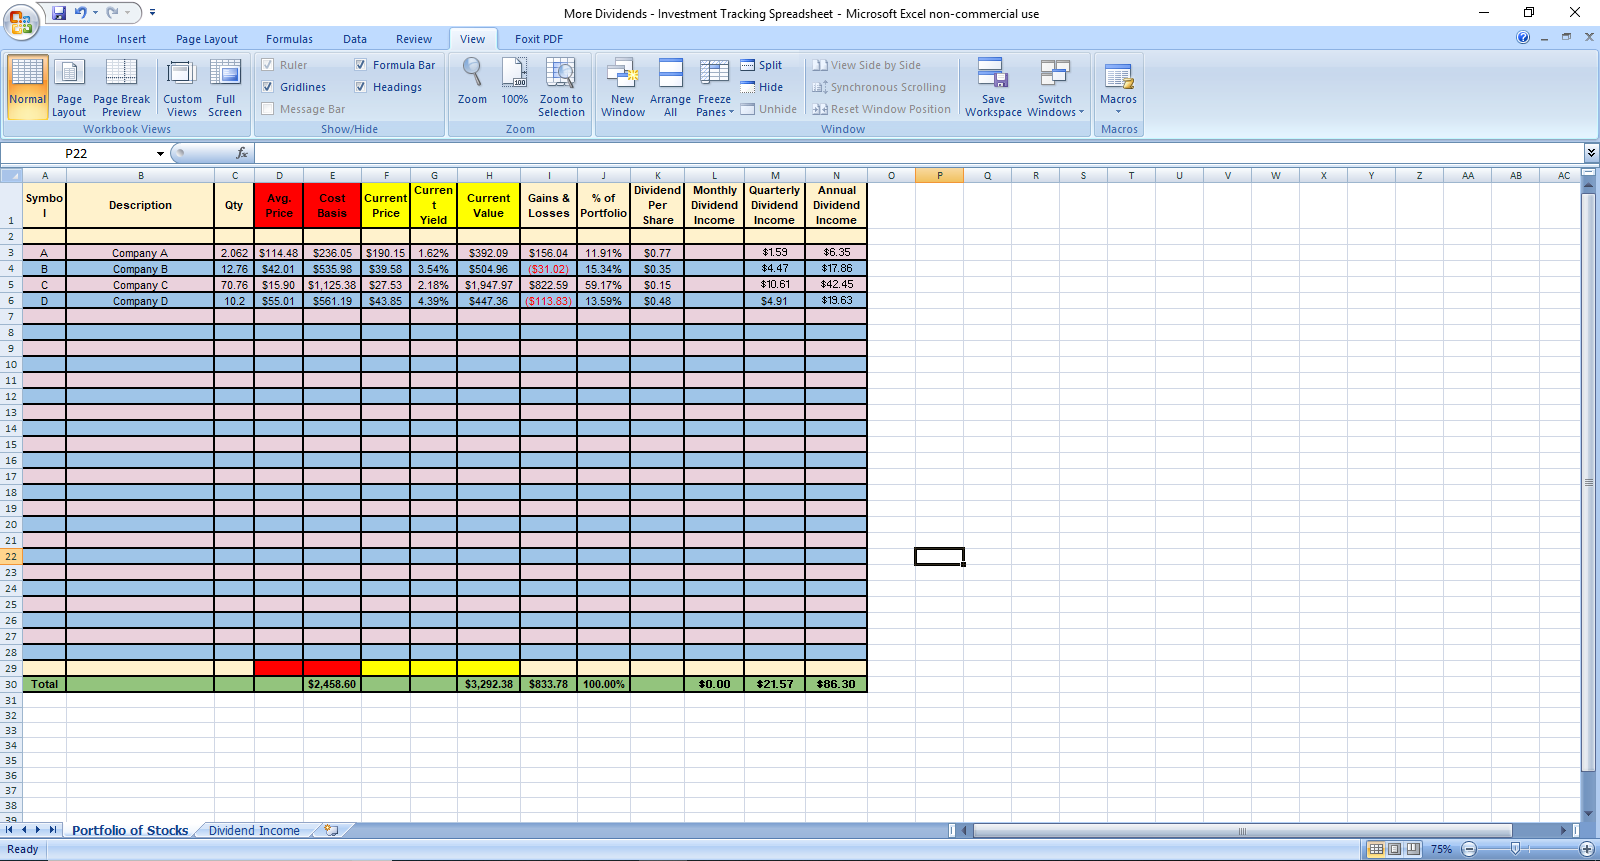 More Dividends Investment Tracking Spreadsheet